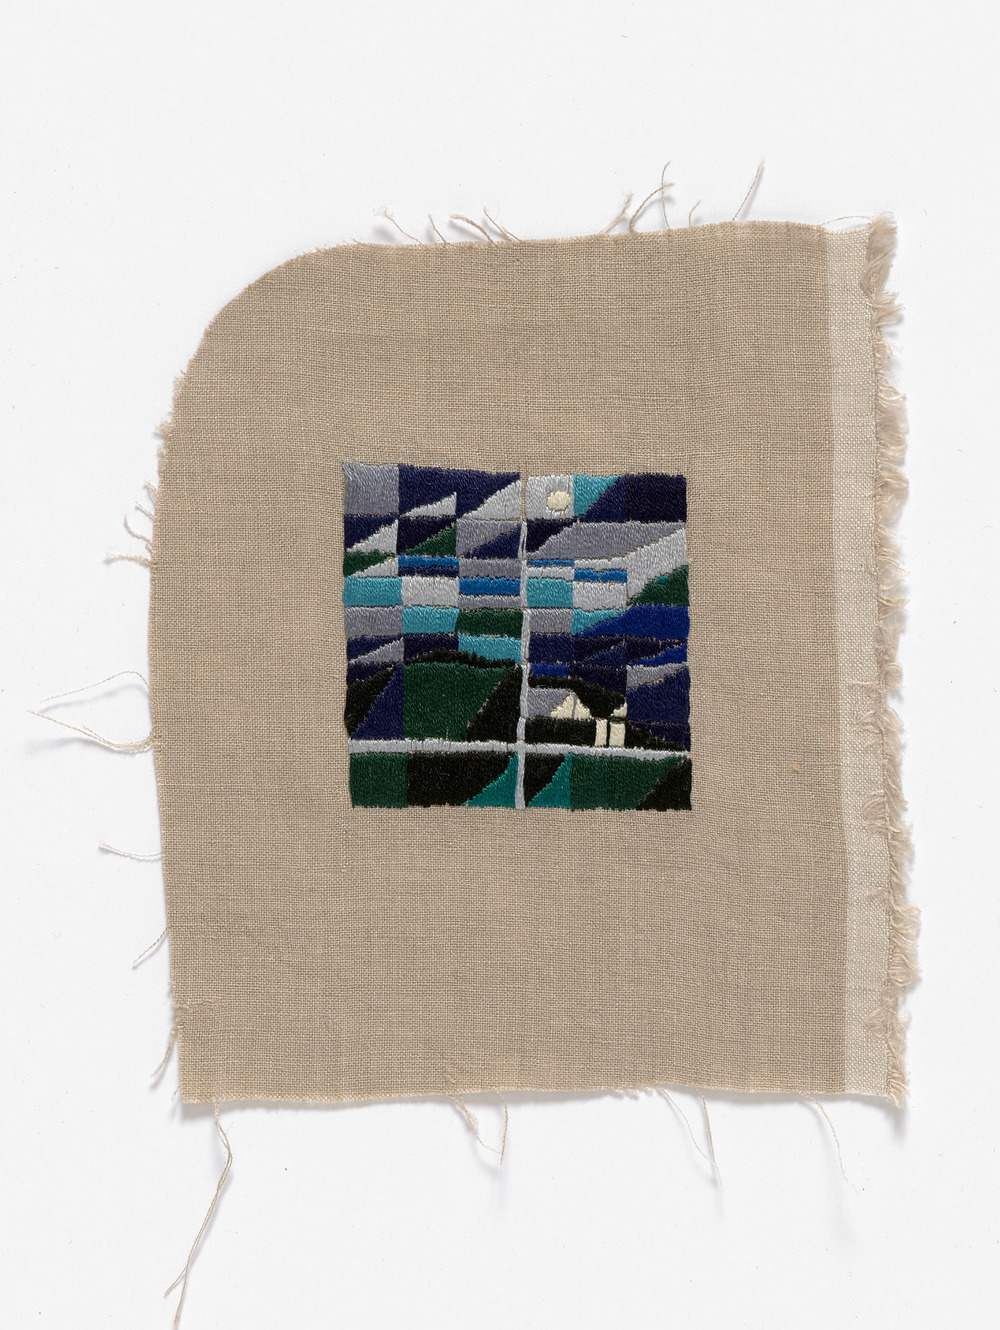 Before bedtime, Venus Bay  2015 Cotton thread on linen 16 x 18cm